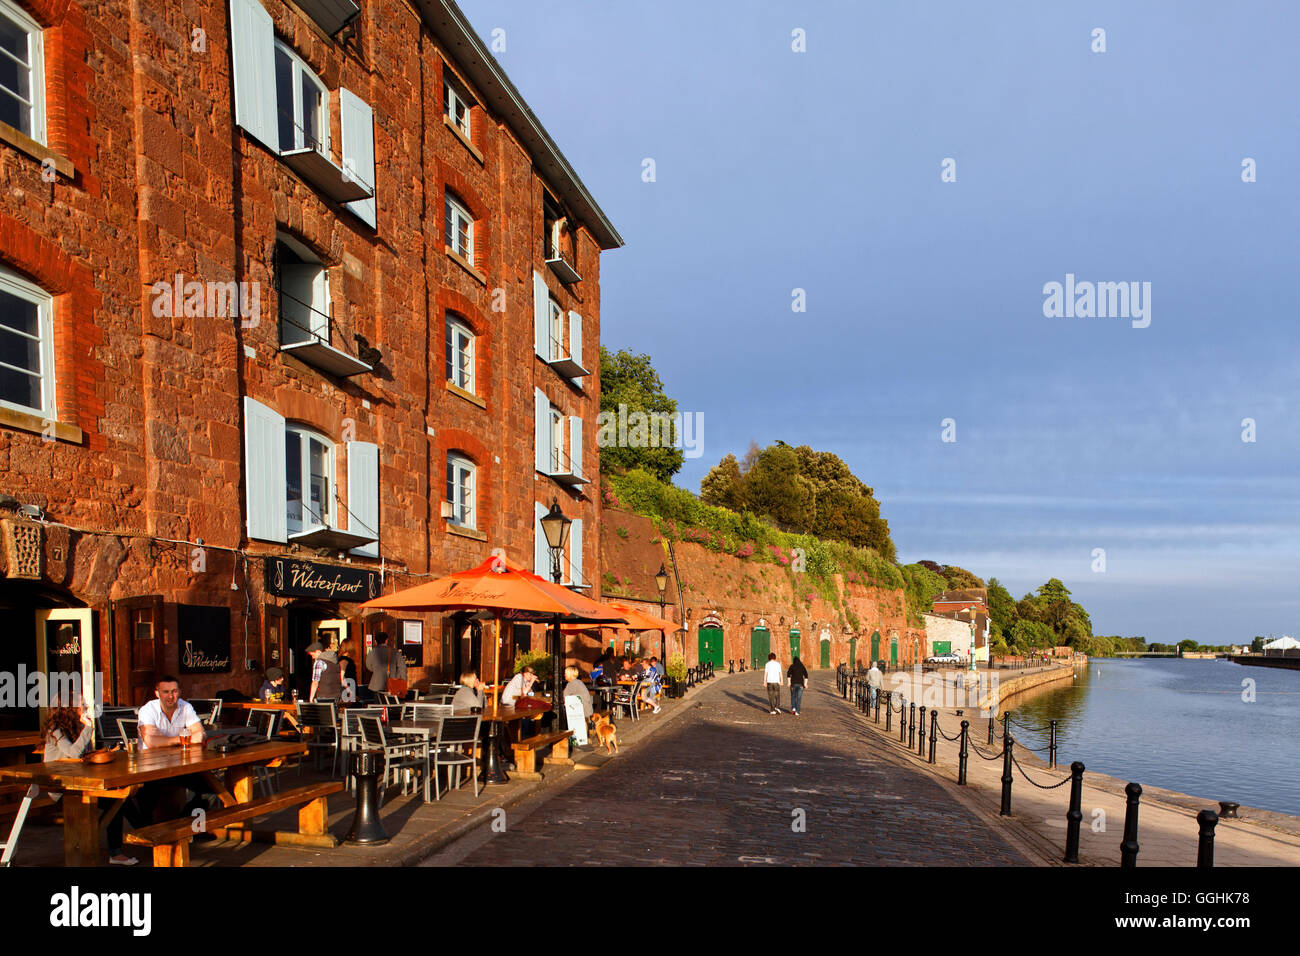 Waterfront pub on the quay of the river Exe, Exeter, Devon, England, Great Britain - Stock Image